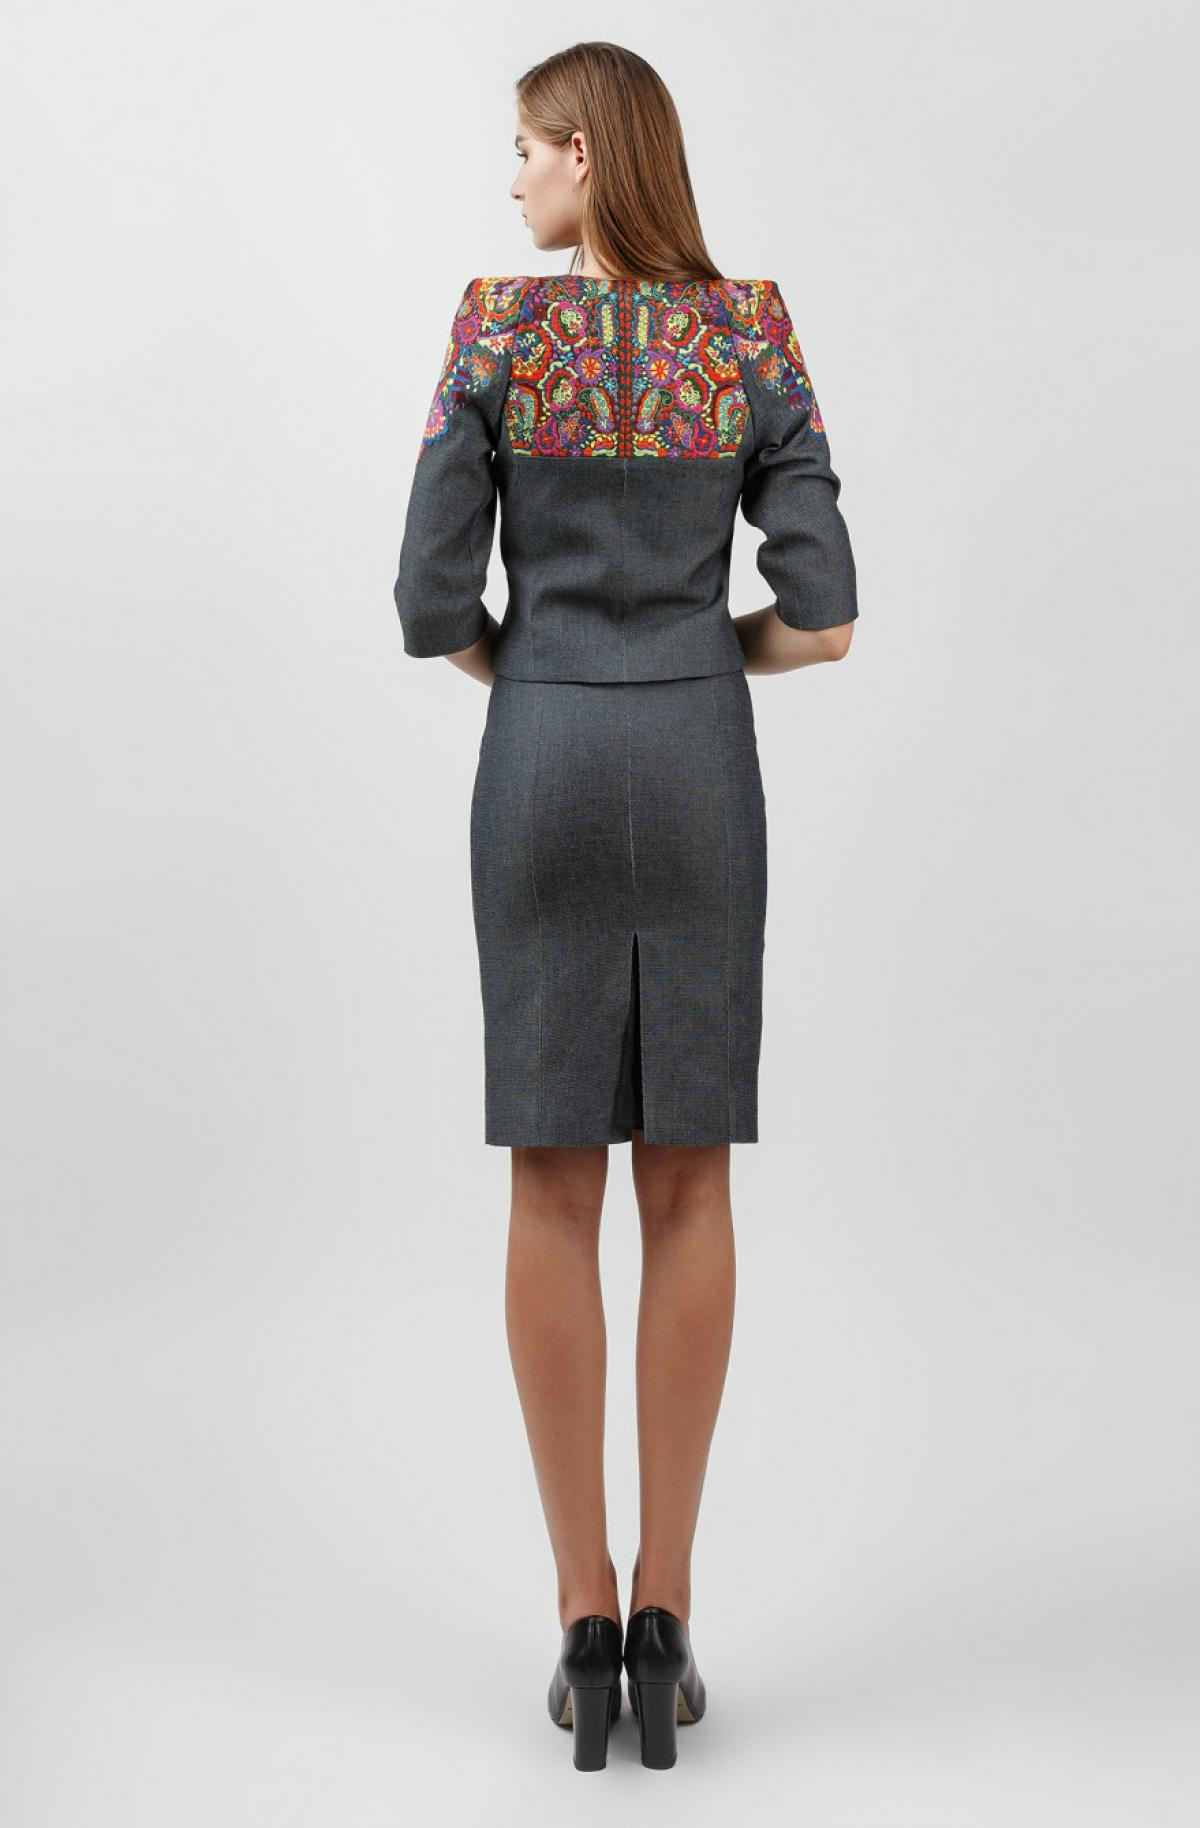 Embroidered suit dress+jacket for business woman, gray. Photo №4. | Narodnyi dim Ukraine